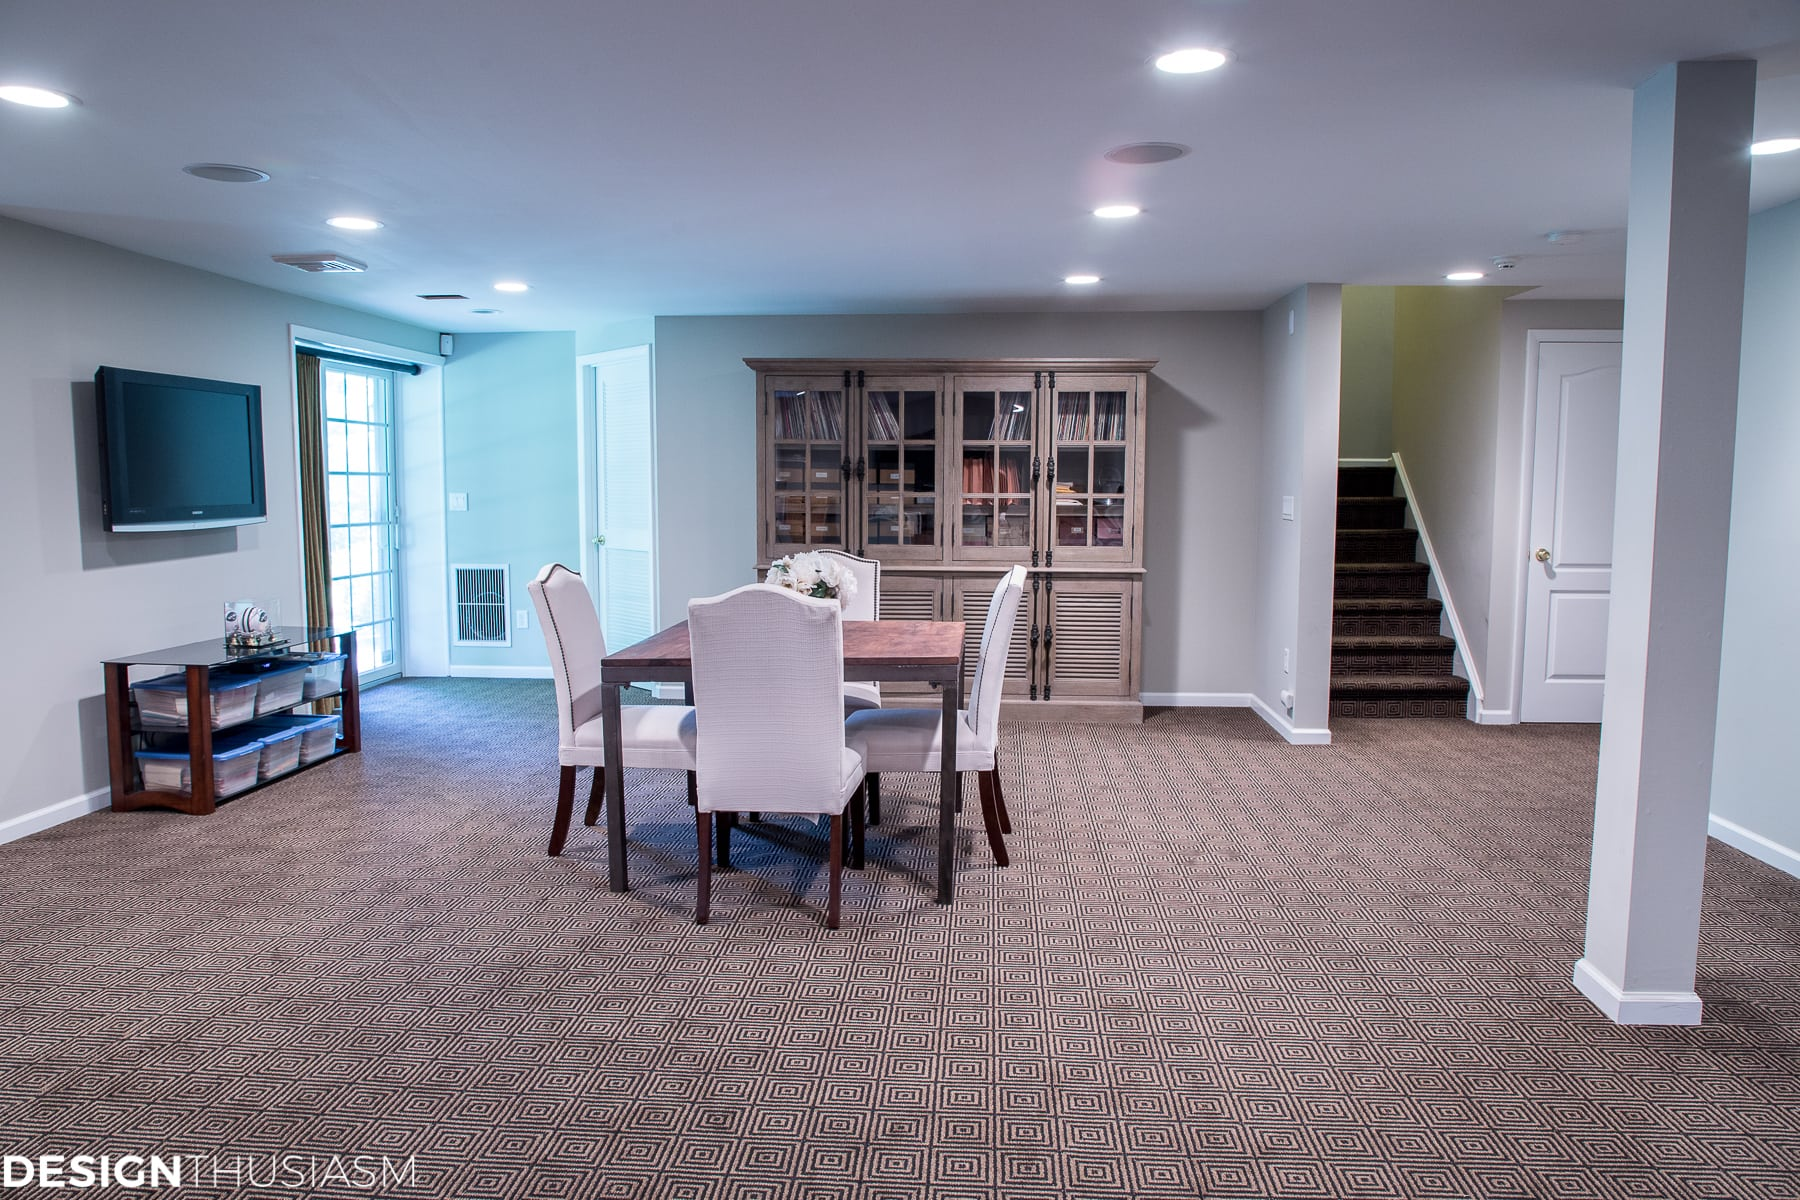 Finished Basement Ideas | 3 Amazing Basement Floor Plans For Casual  Entertaining